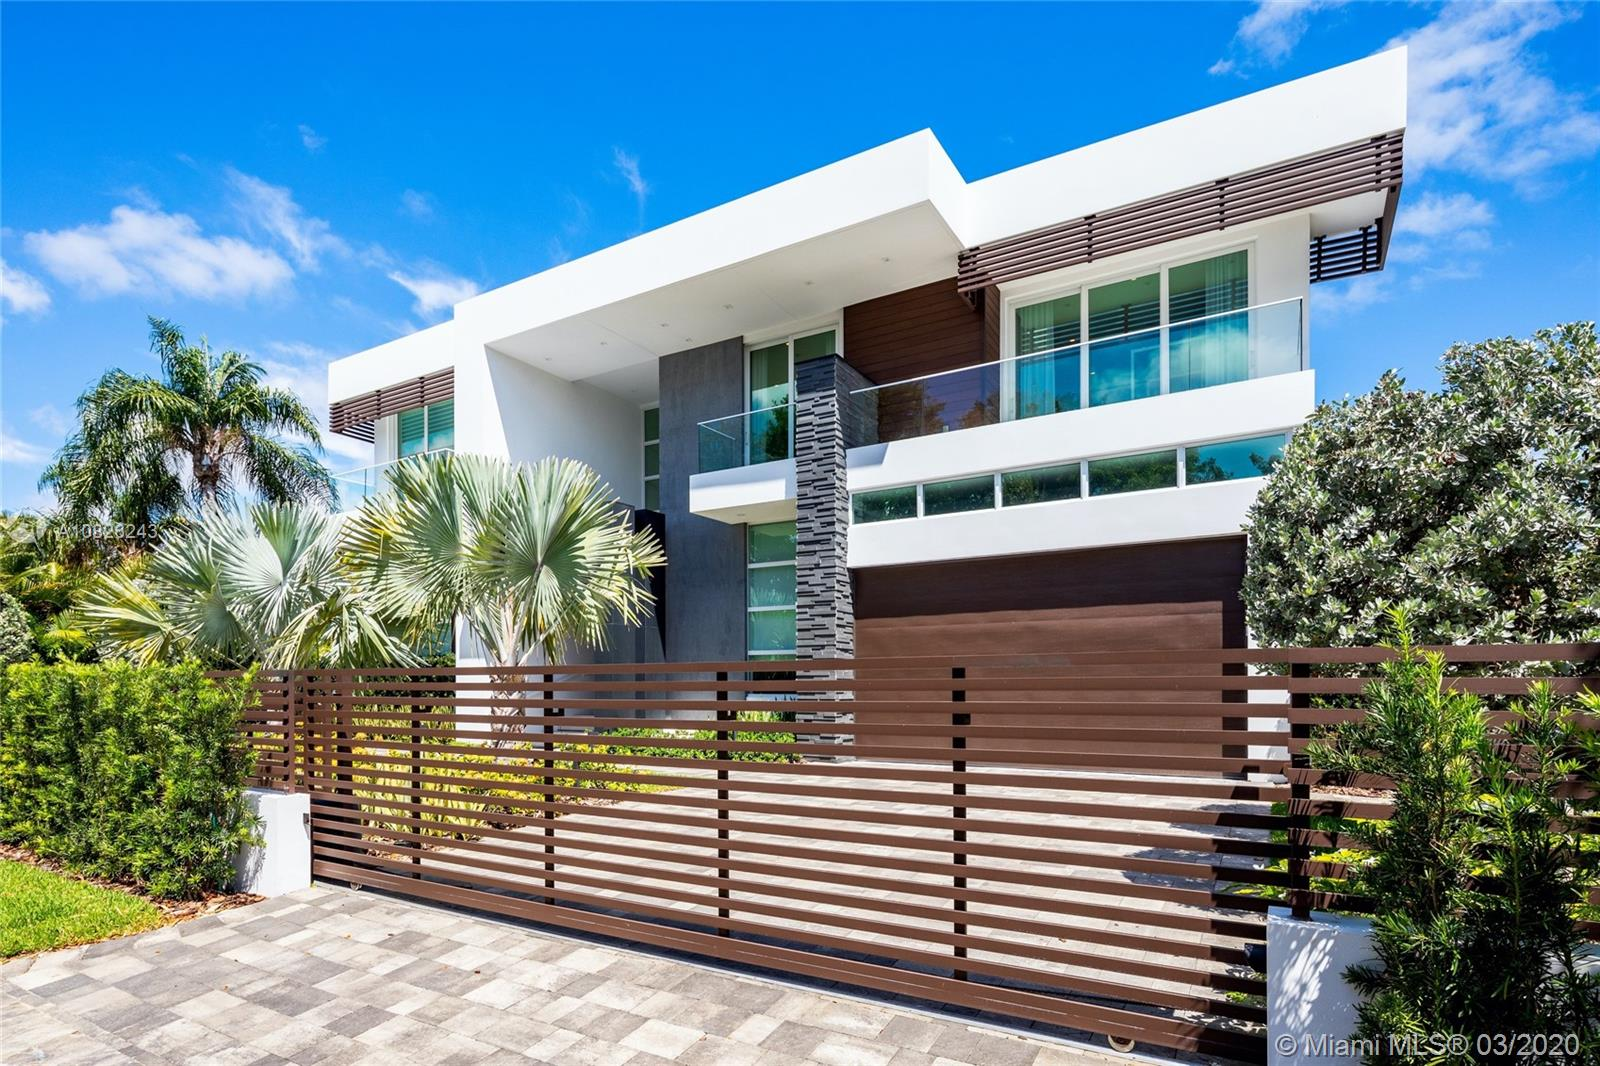 Masterfully Built in 2018, this Brand New 6200 SF Tropical Modern offers a combination of sleek Architecture & Bespoke finishes that will be sure to amaze the most discerning clientele. A thoughtfully Designed open layout perfect for lavish entertainment or family enjoyment, this fully integrated smart home features high ceilings, Crestron lighting, full home automation w/ security cameras, Snaidero Kitchen & Vanities, Electronic Window Treatments, Spacious Walk-in Closets w/ Custom Cabinetry, floating staircase & much more. The sleek lines & modern Architecture seamlessly blurs the lines of Indoor Outdoor living, creating your own tropical oasis. The backyard offers an outdoor summer kitchen w/ grill, zero edge swimming pool w/ spa & covered loggia. A+ Location & Top School District.